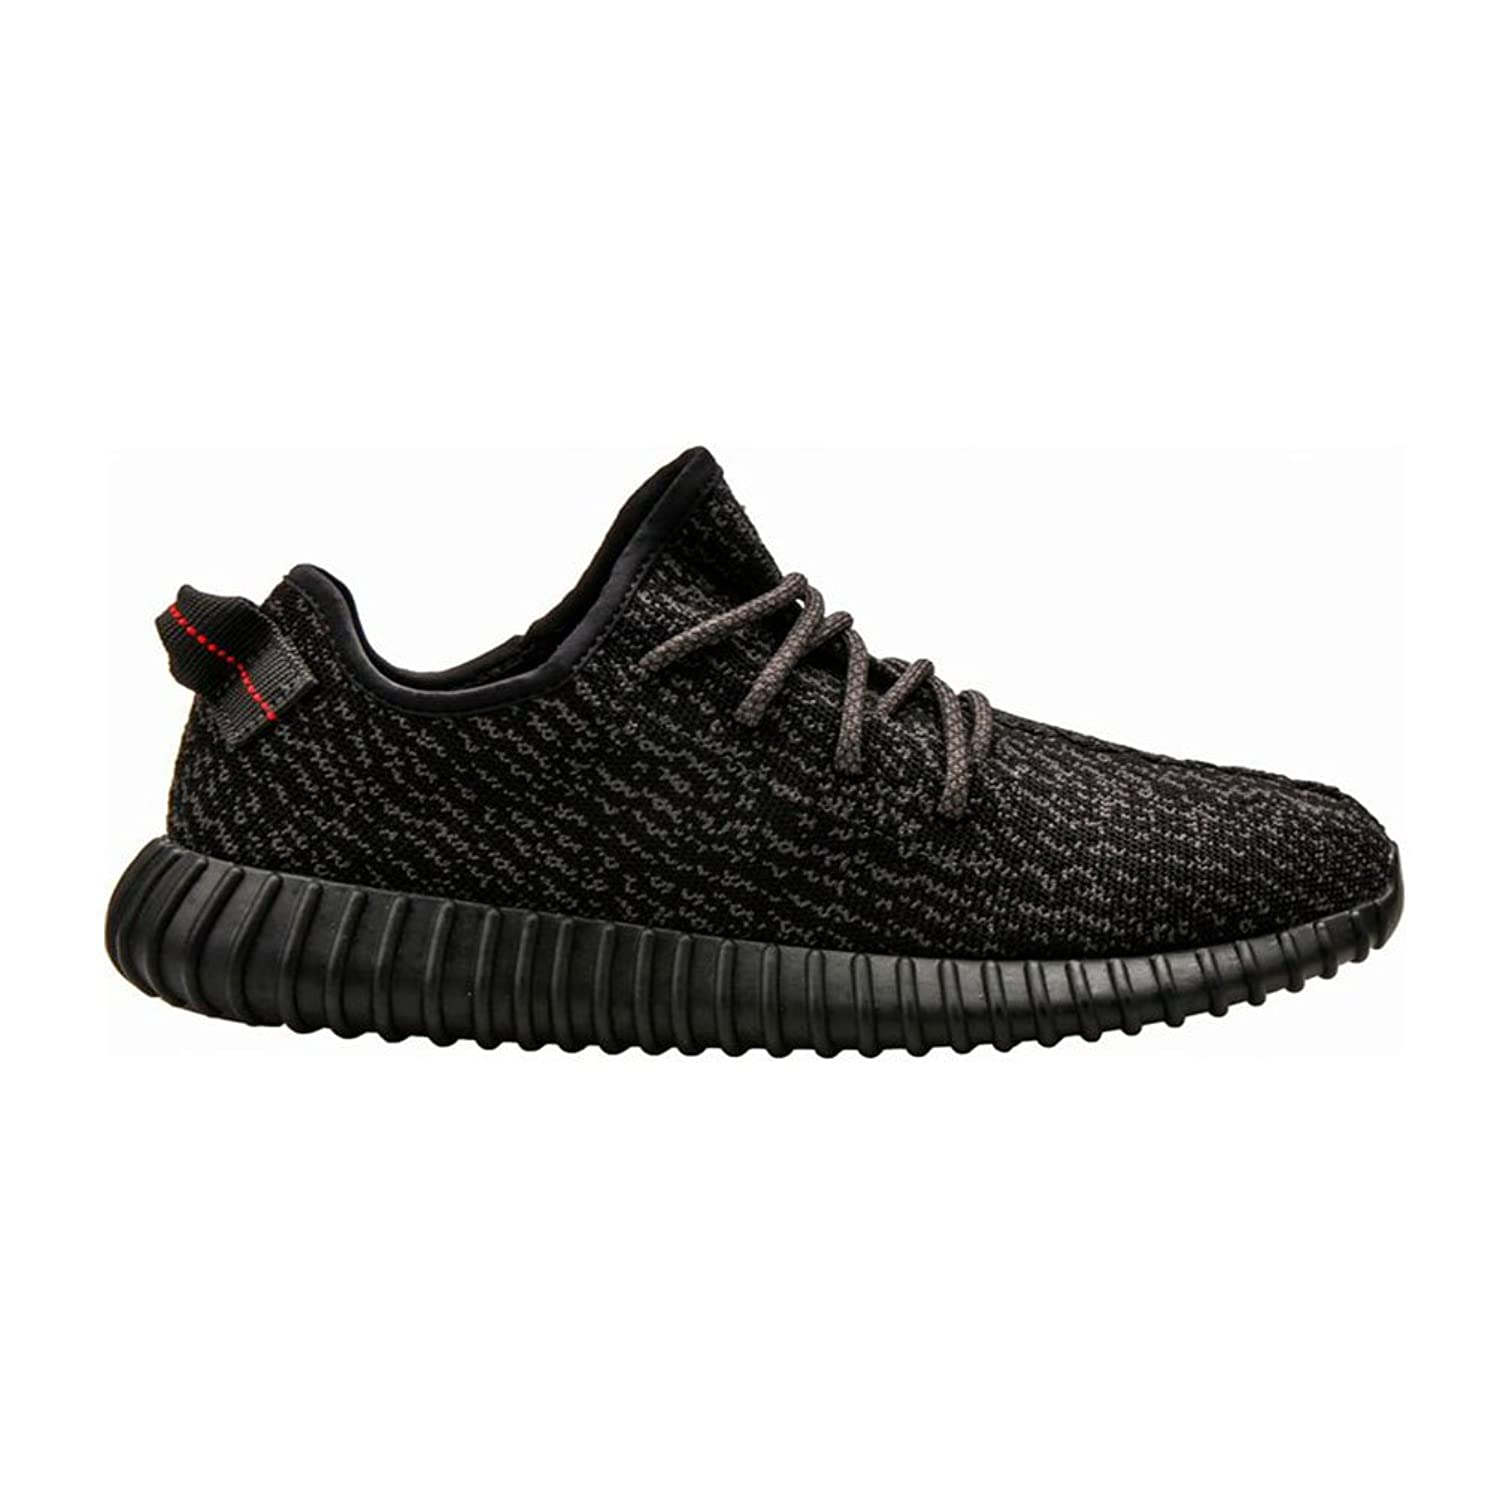 Adidas Men Yeezy Boost 350